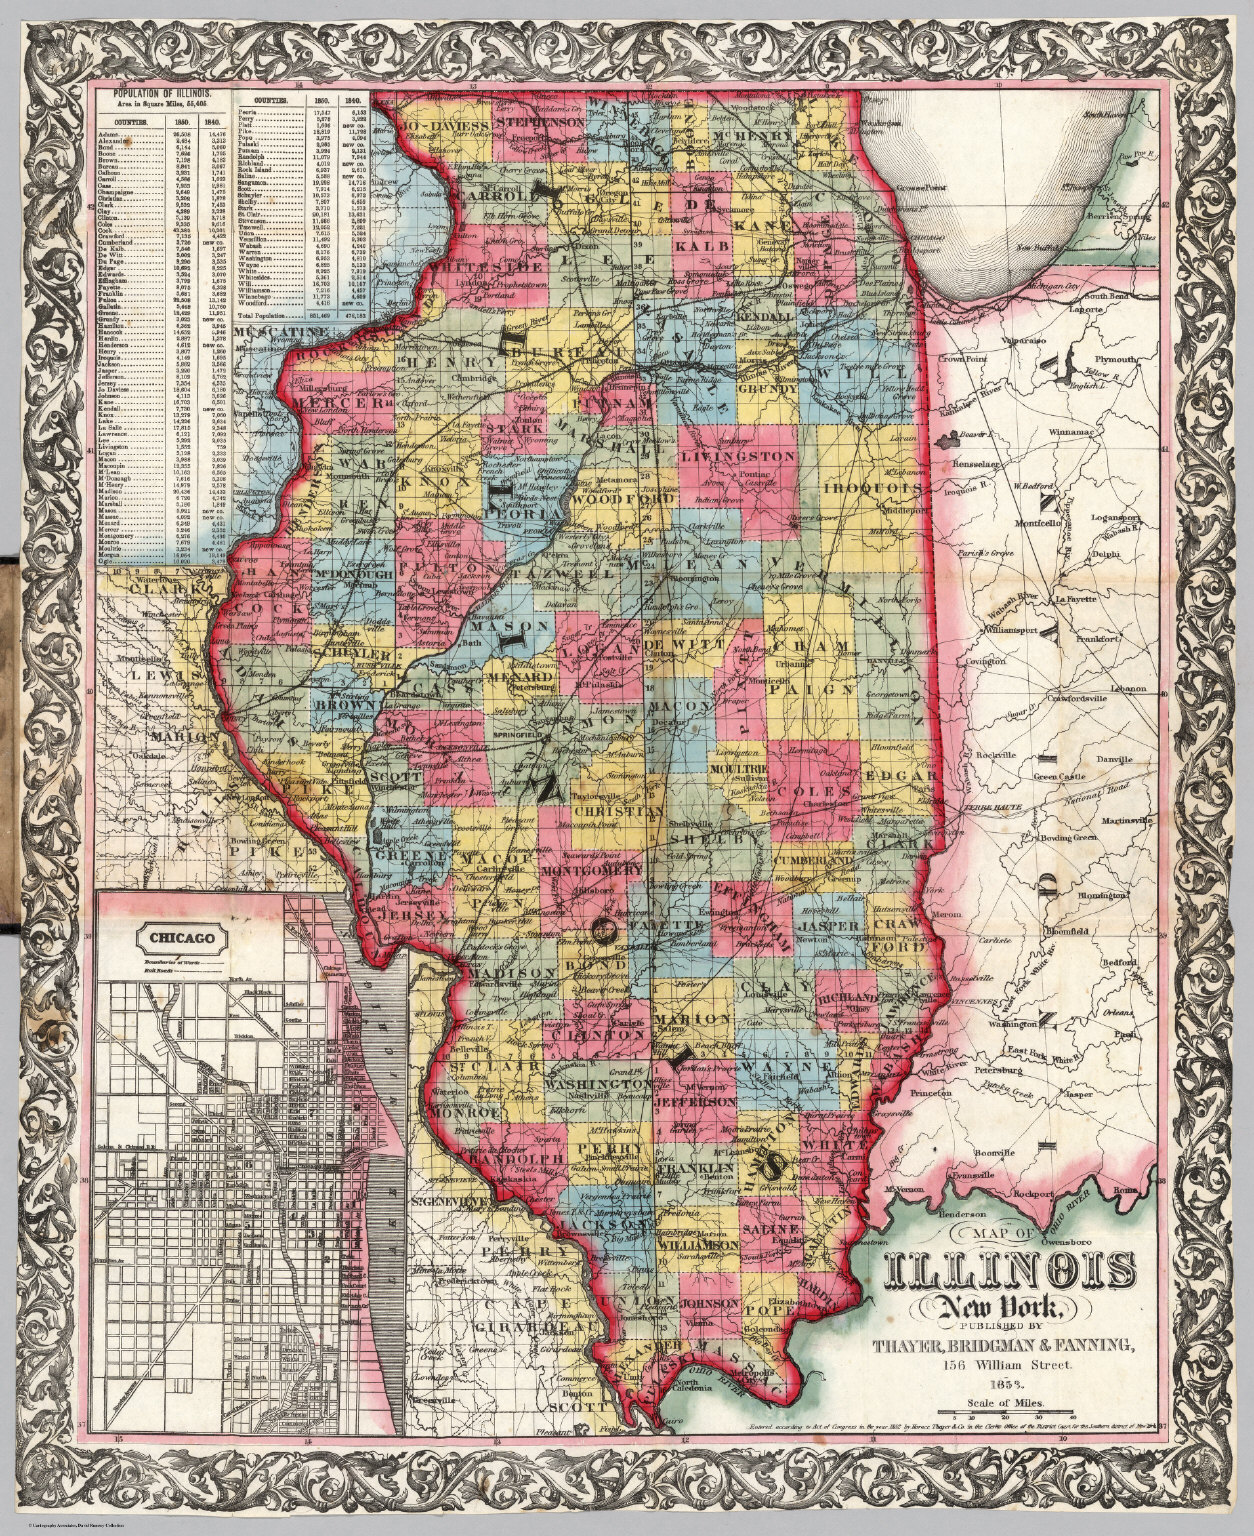 Map of Illinois - David Rumsey Historical Map Collection